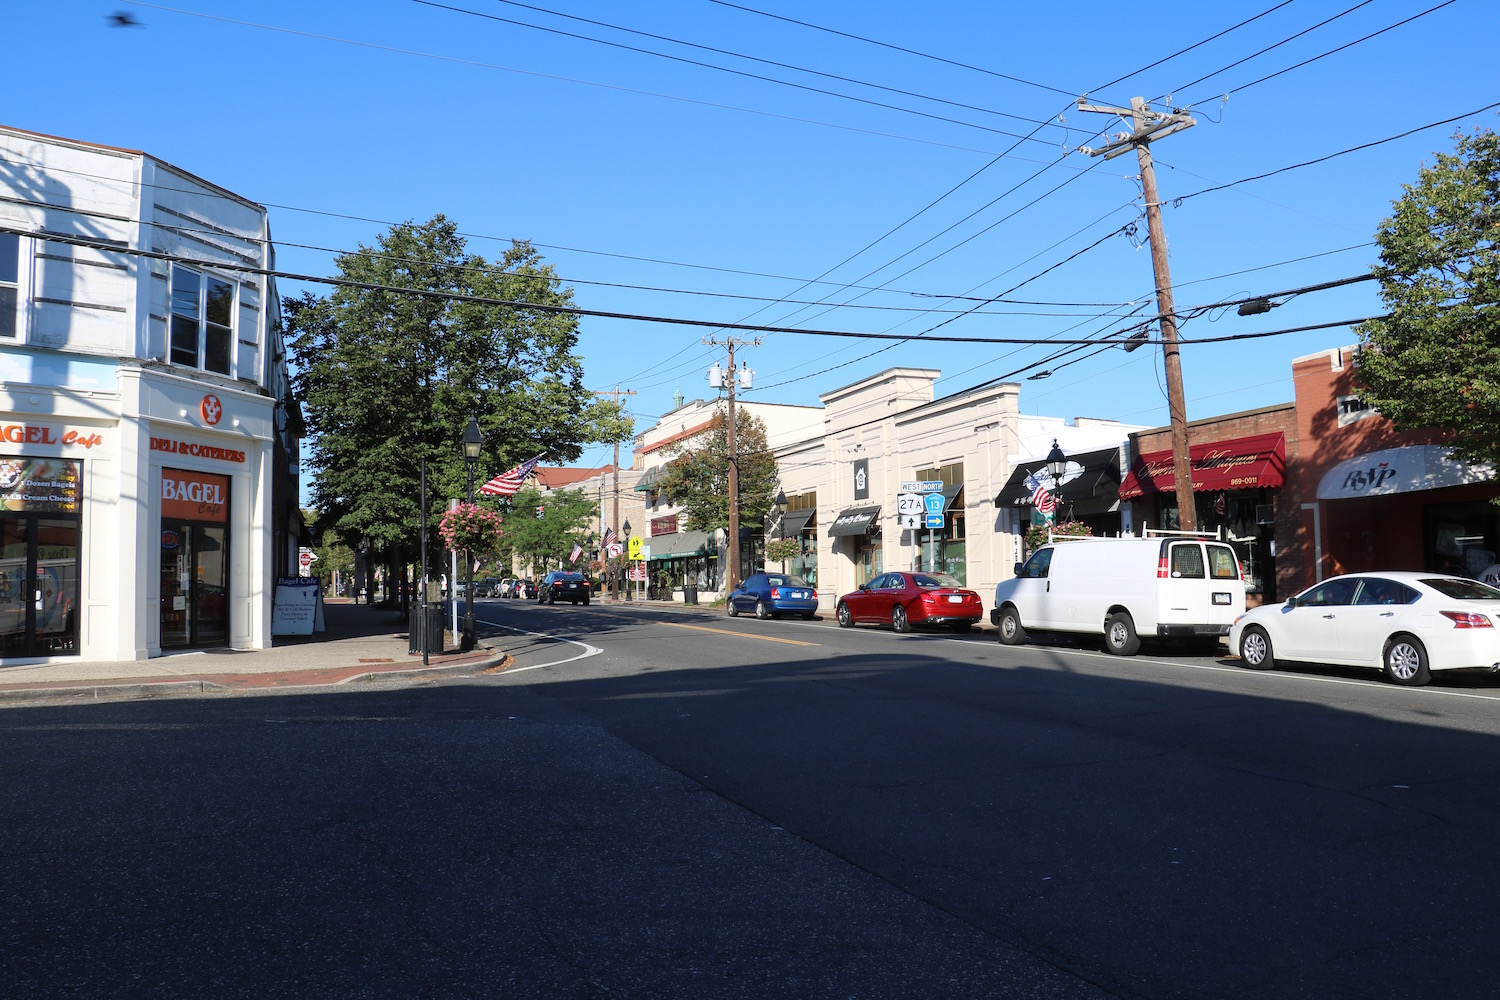 Main Street is bustling, and Bay Shore hopes to beautify the path to it in the coming years image: mary demaio